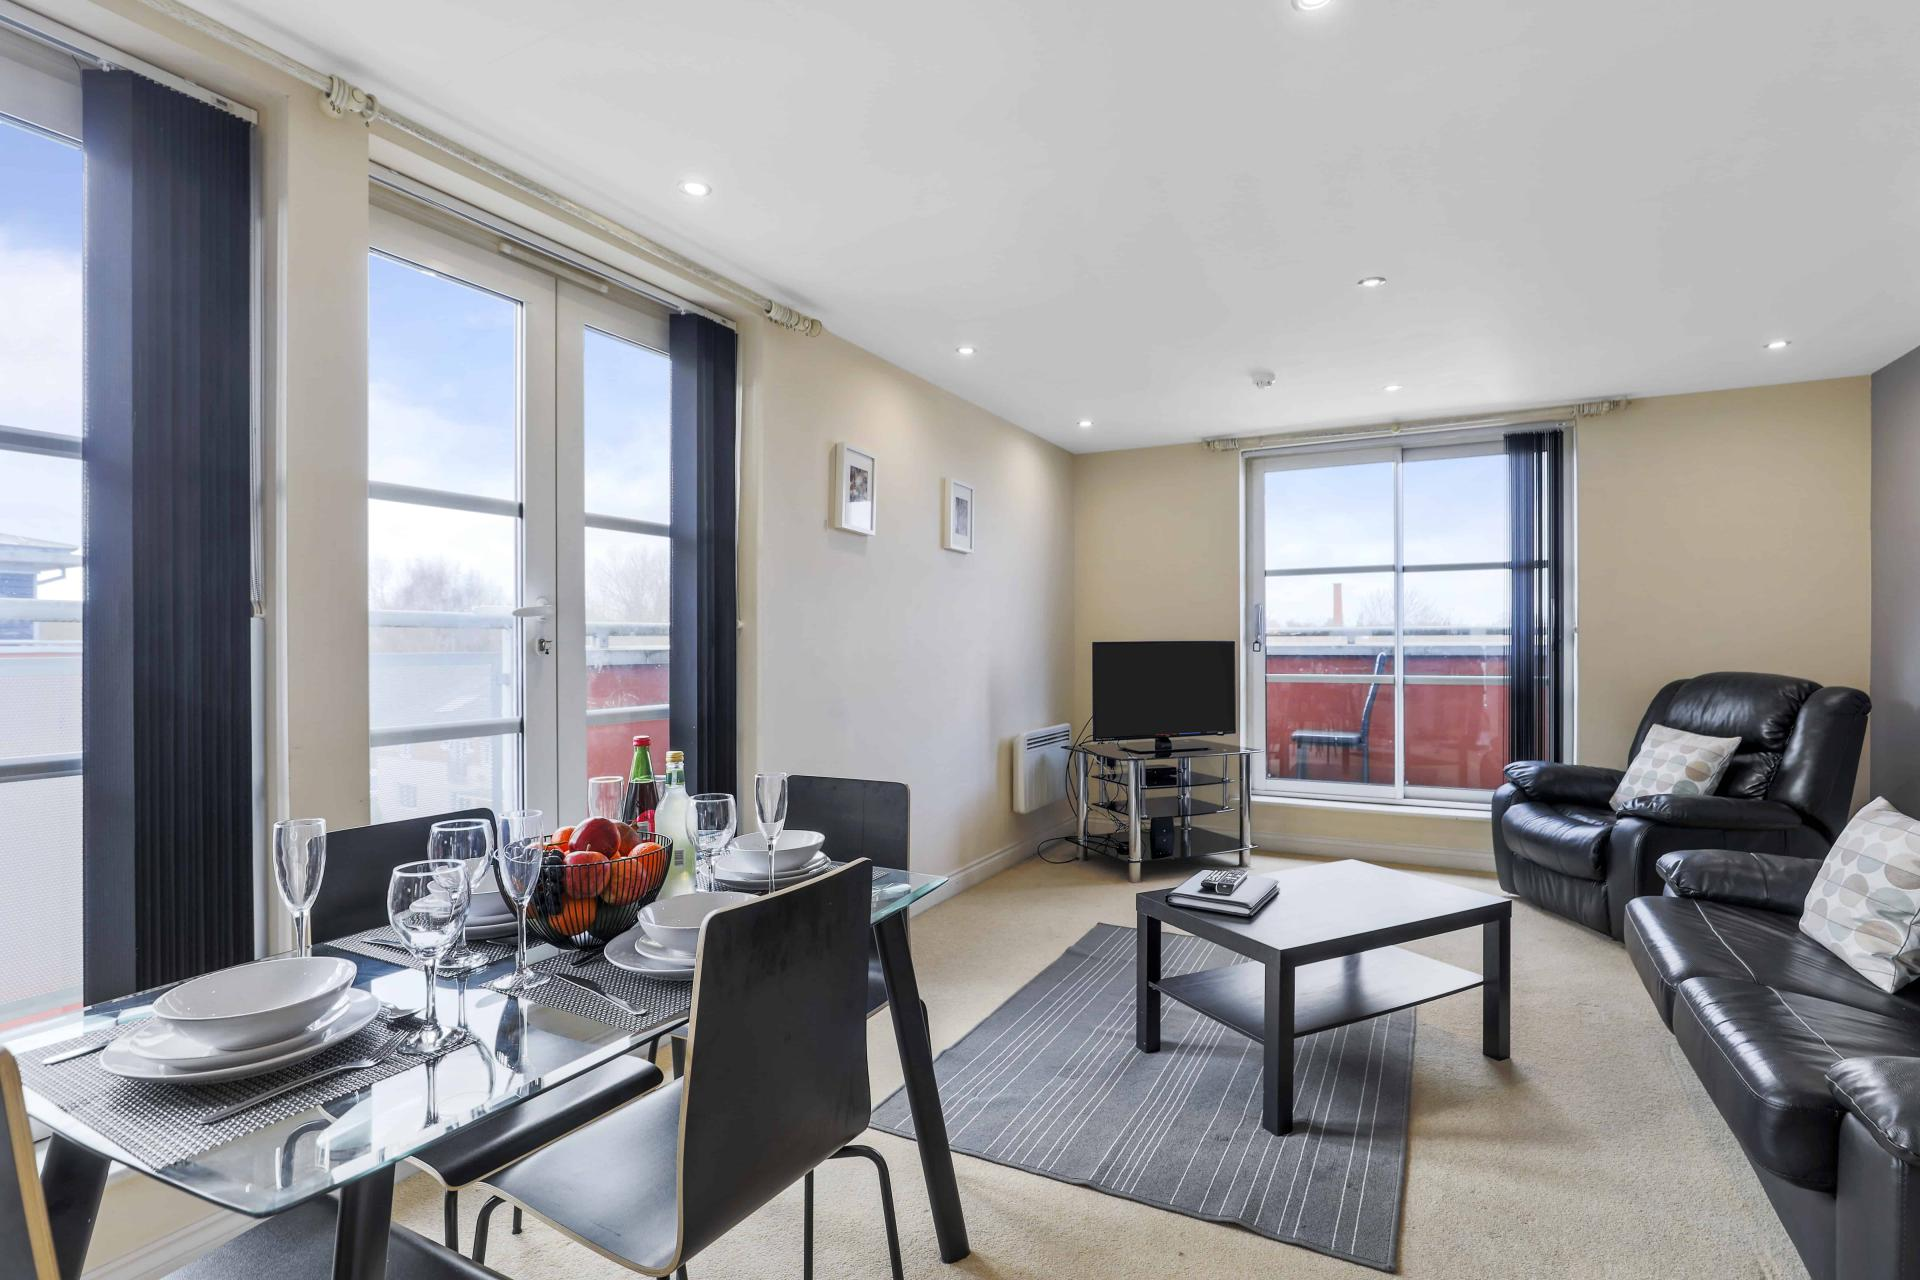 Lounge at Freemens Meadow Apartments, Freemens Meadow, Leicester - Citybase Apartments